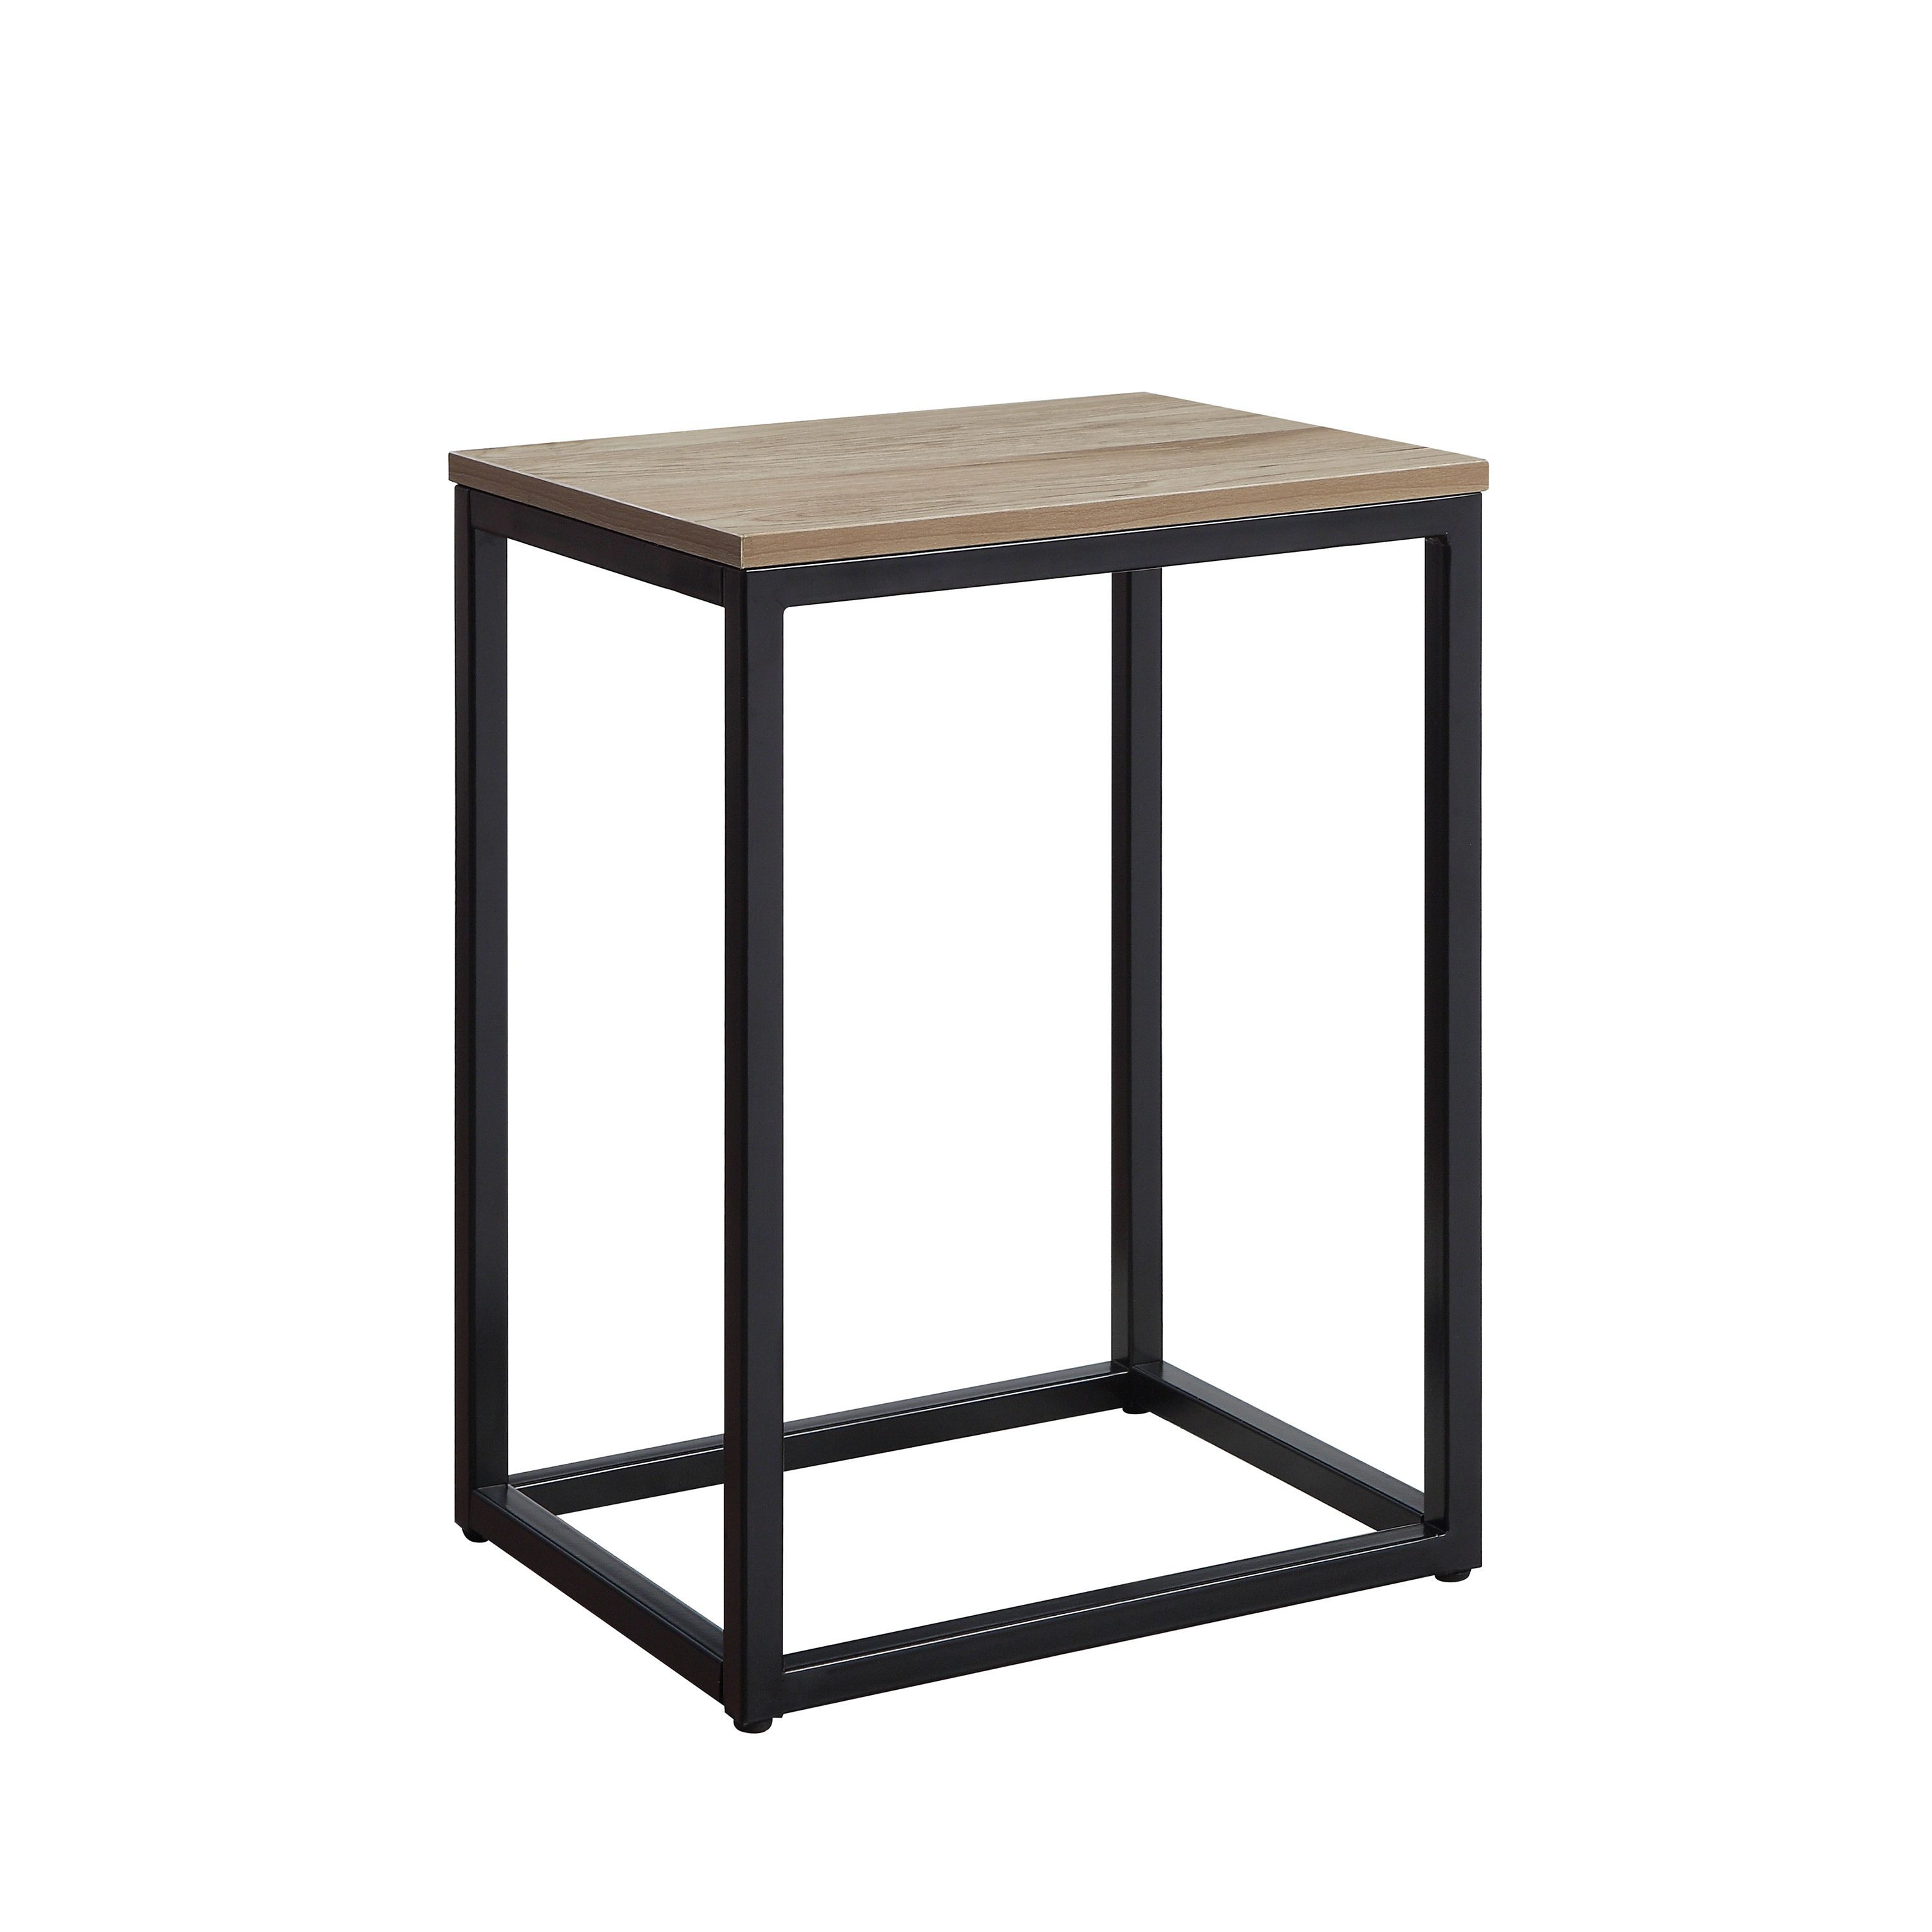 mainstays end table black marble accent dining seats sofa for small space living room bbq art deco lamps decorative furniture legs round side silver chest drawers target white